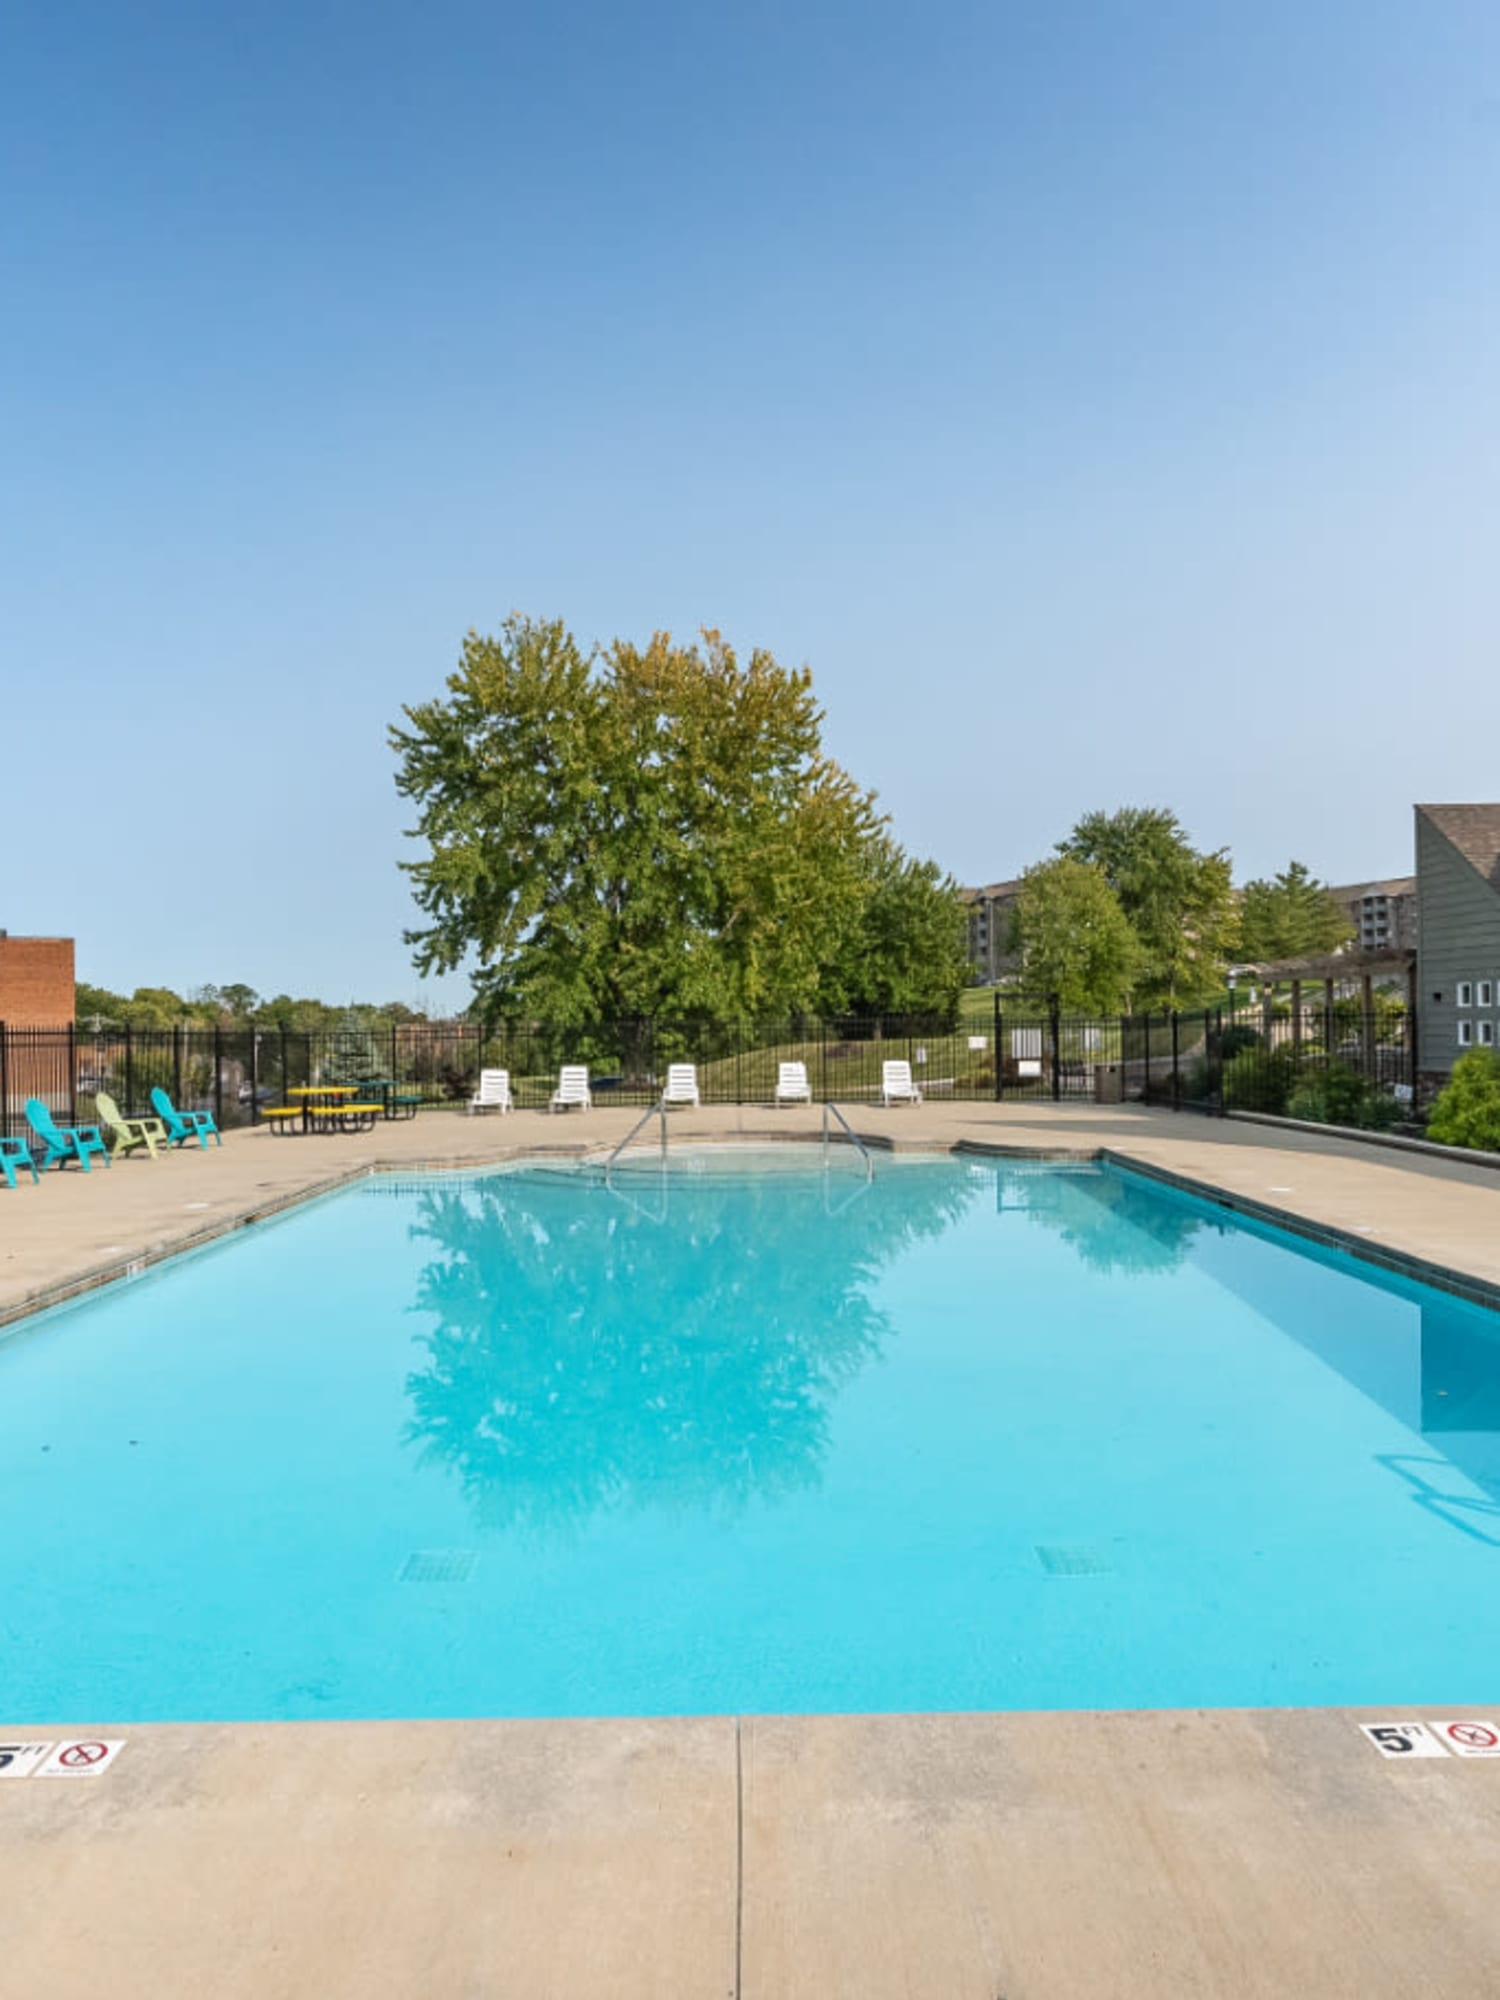 A large swimming pool with a sundeck at Vantage Pointe West Apartments in Cincinnati, Ohio